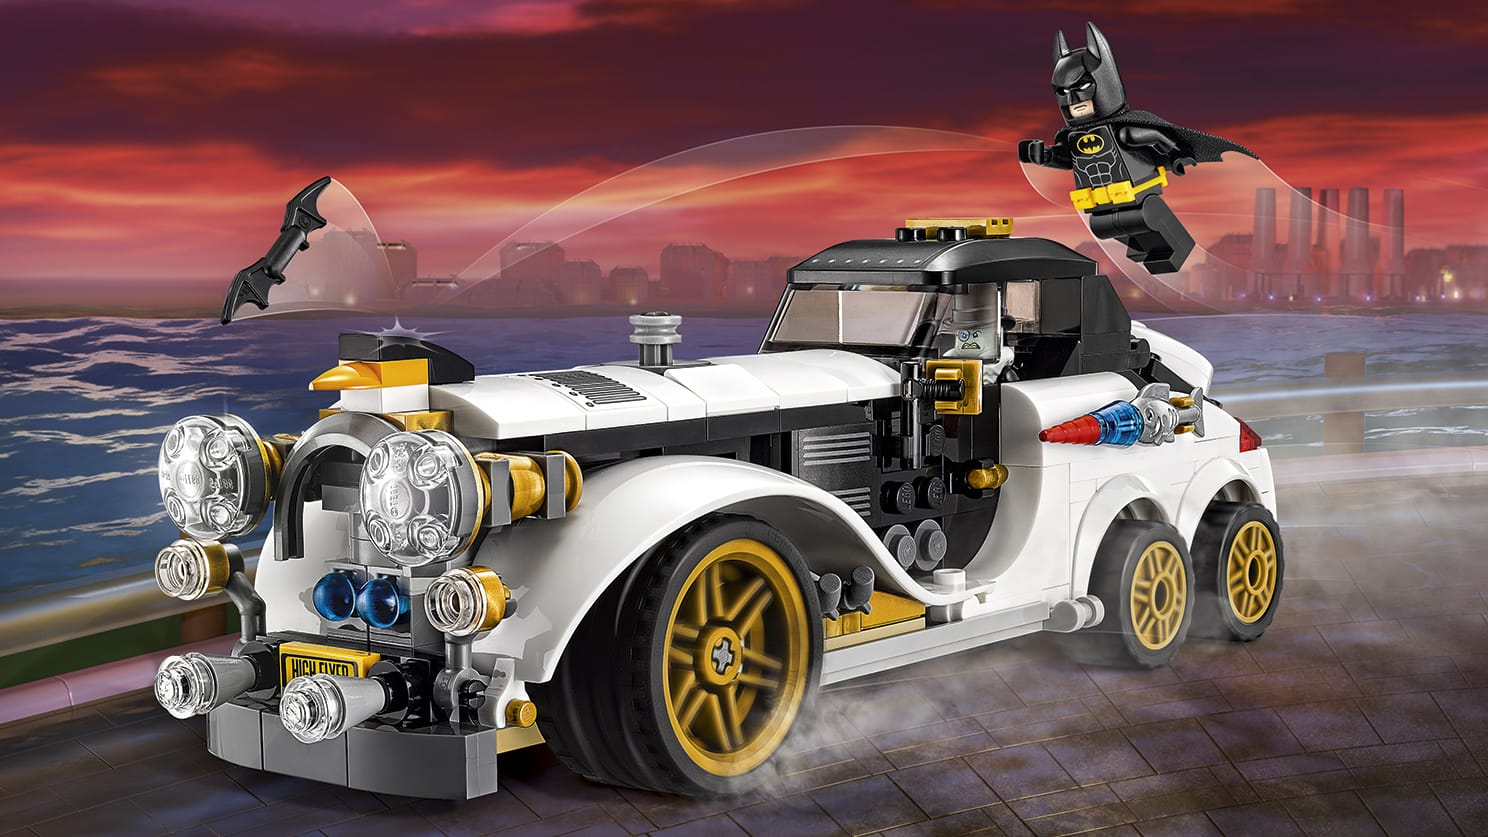 LEGO Batman Movie The Penguin Arctic Roller - 70911 - The Penguin drives around Gotham City and makes chaos with his missile loaded car so Batman has to stop him.